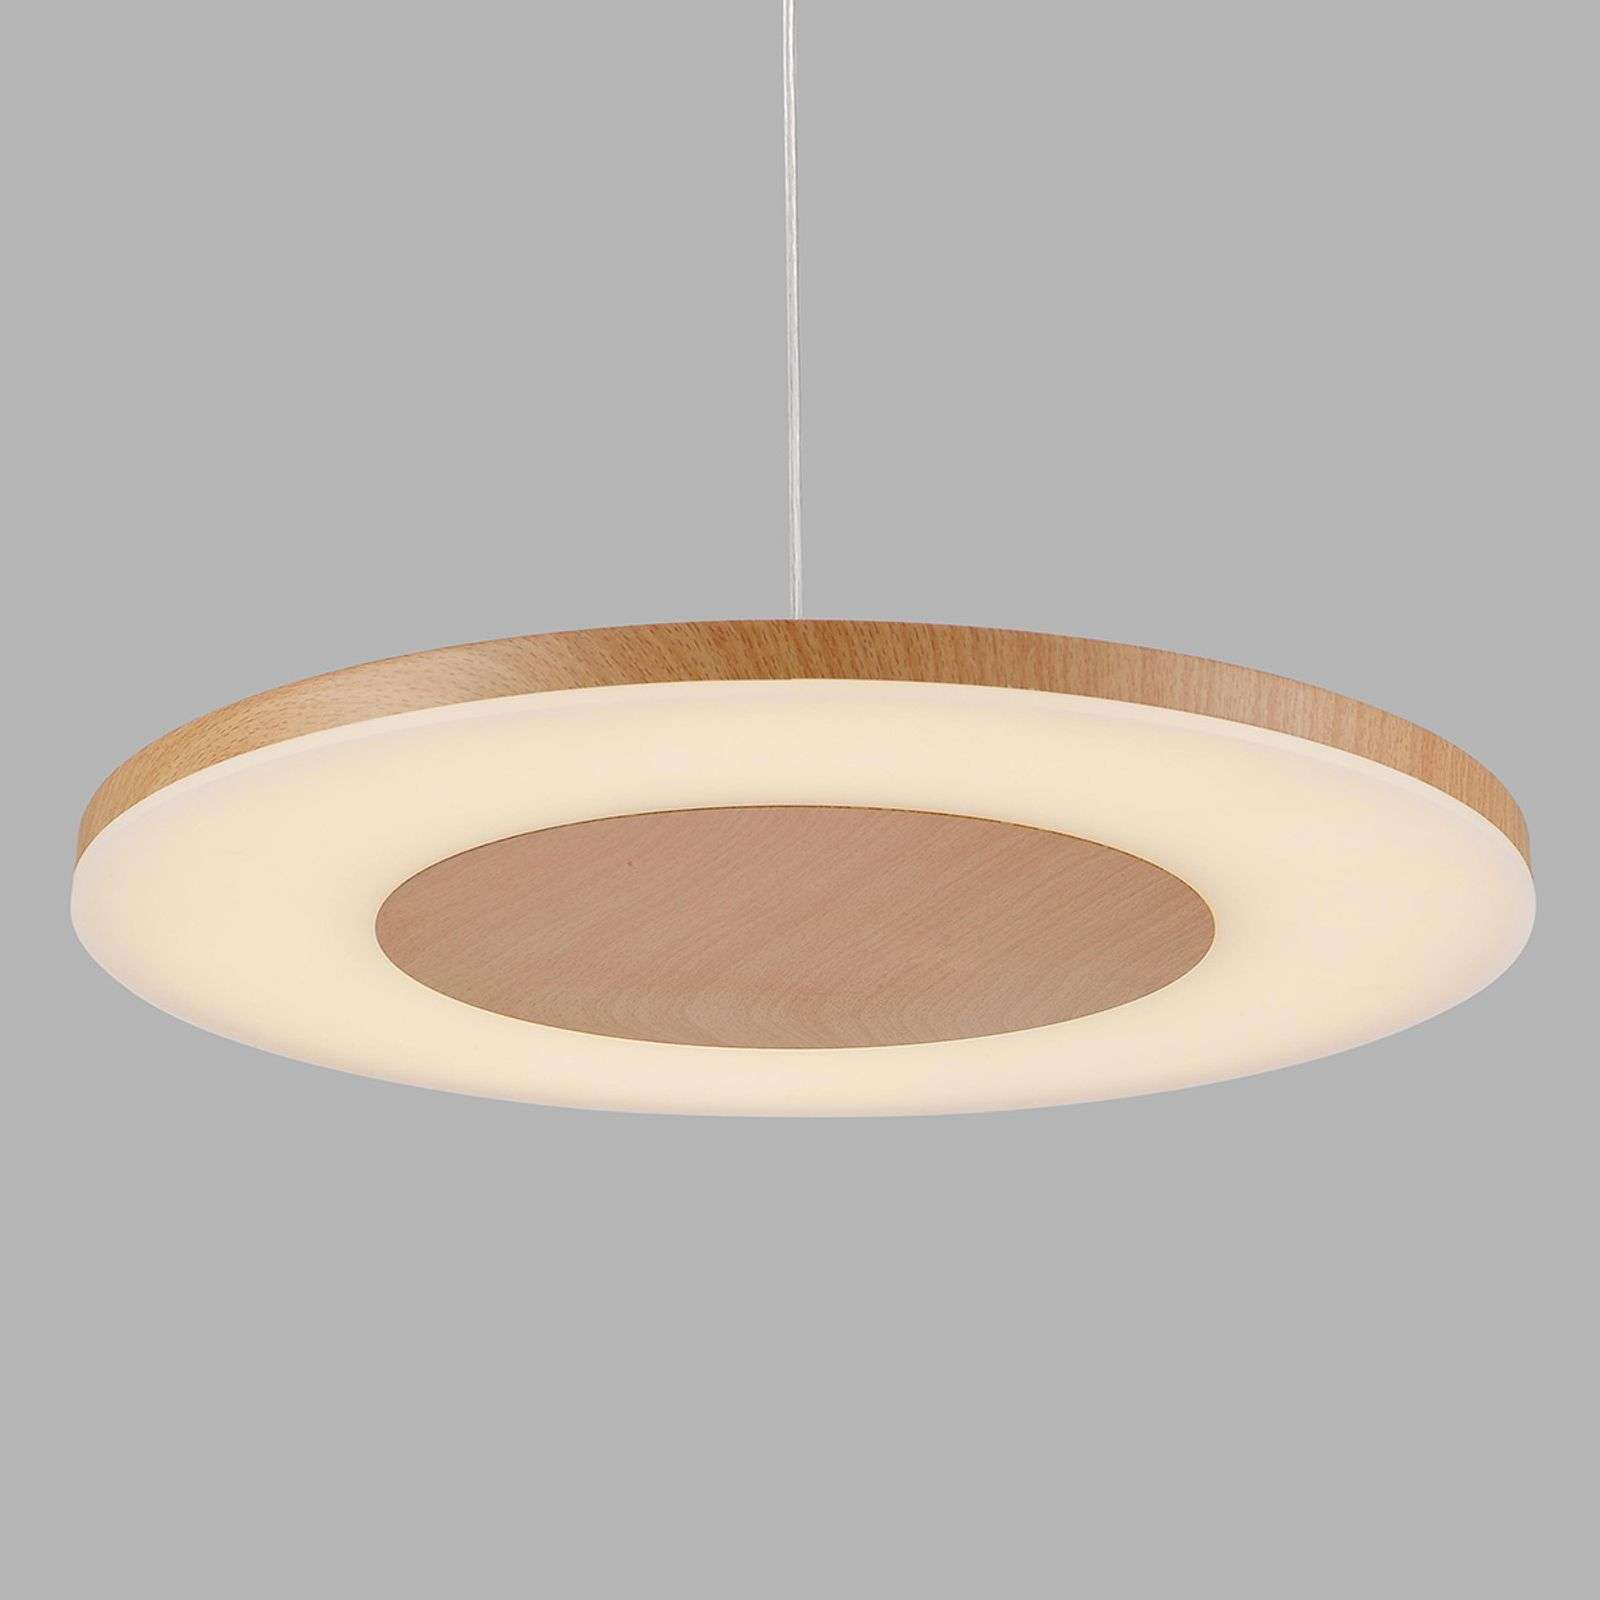 Suspension LED Discobolo couleur bois